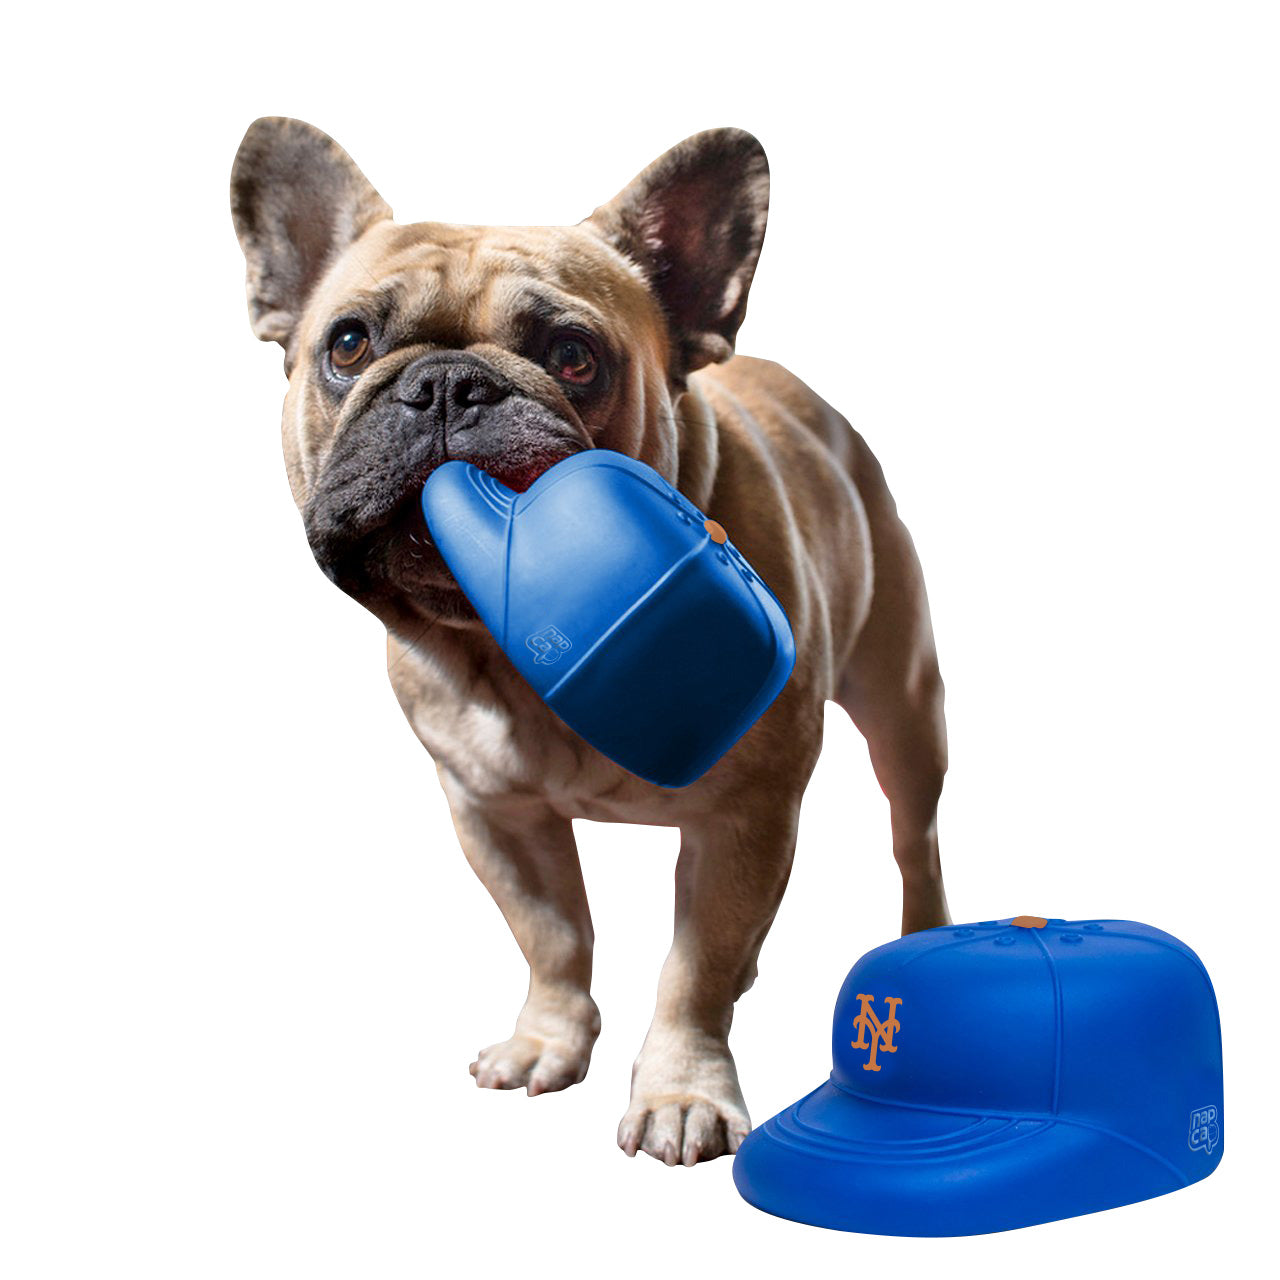 New York Mets PlayCap Dog Chew Toy